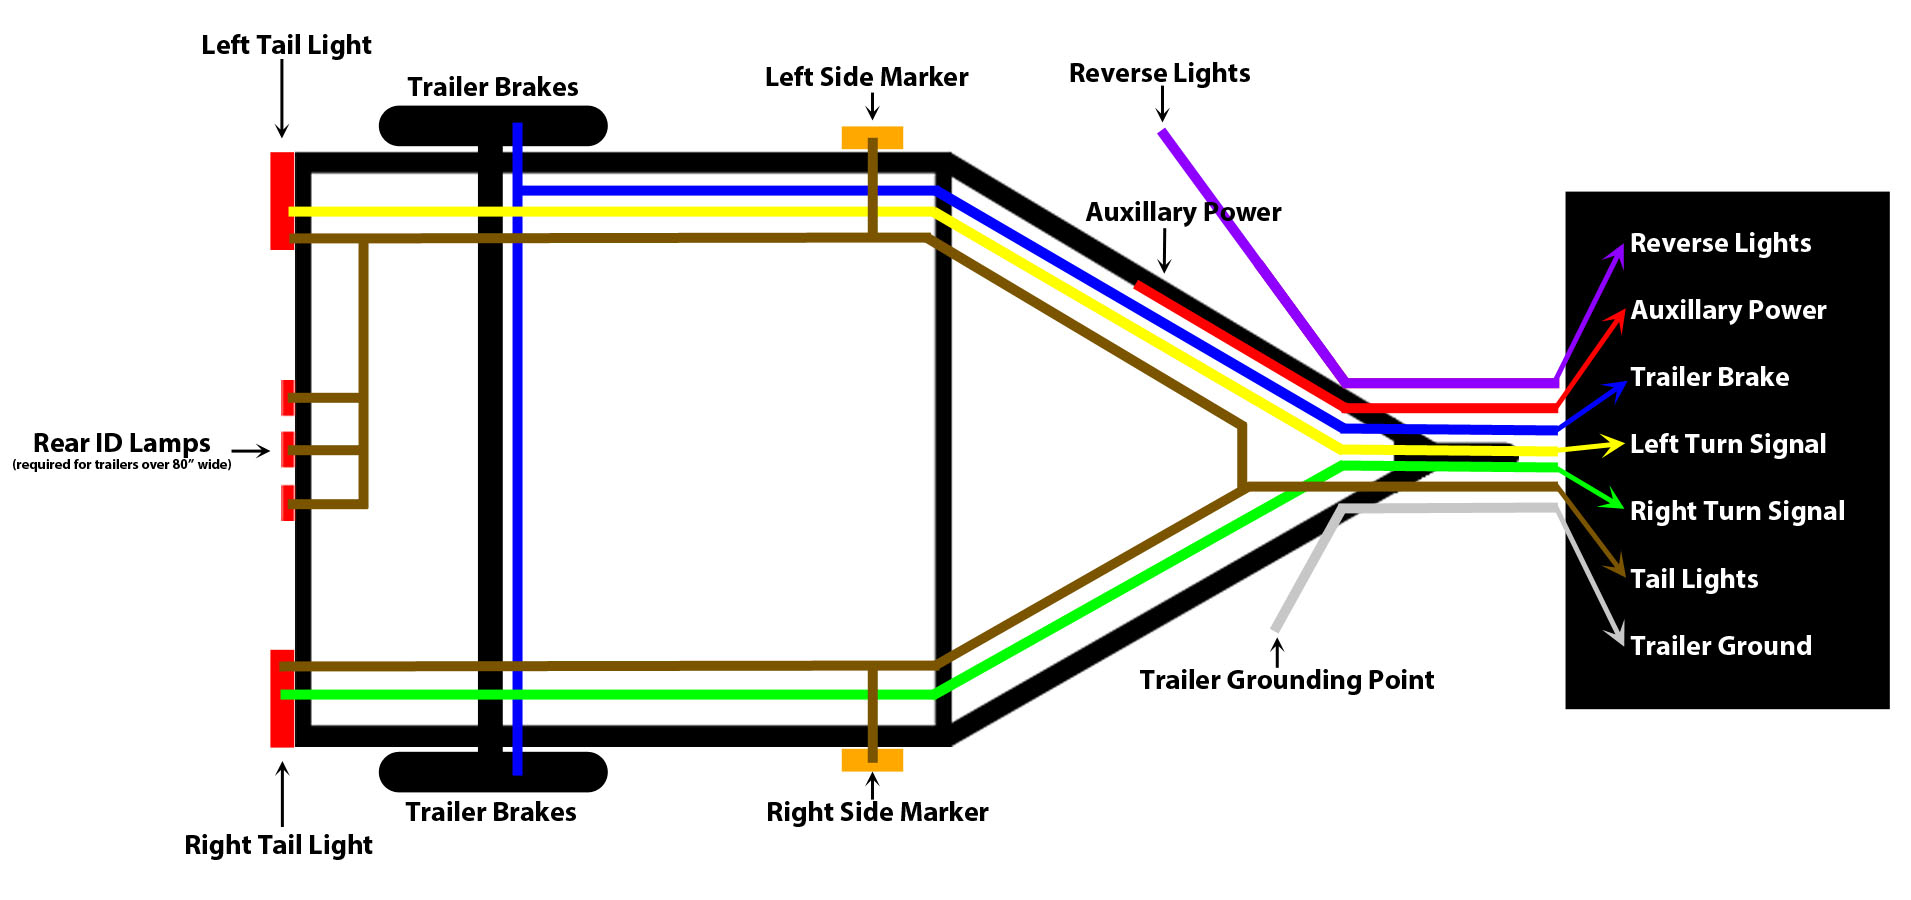 Quality Trailer Wiring Diagram - Good Place To Get Wiring Diagram • - Quality Trailer Wiring Diagram